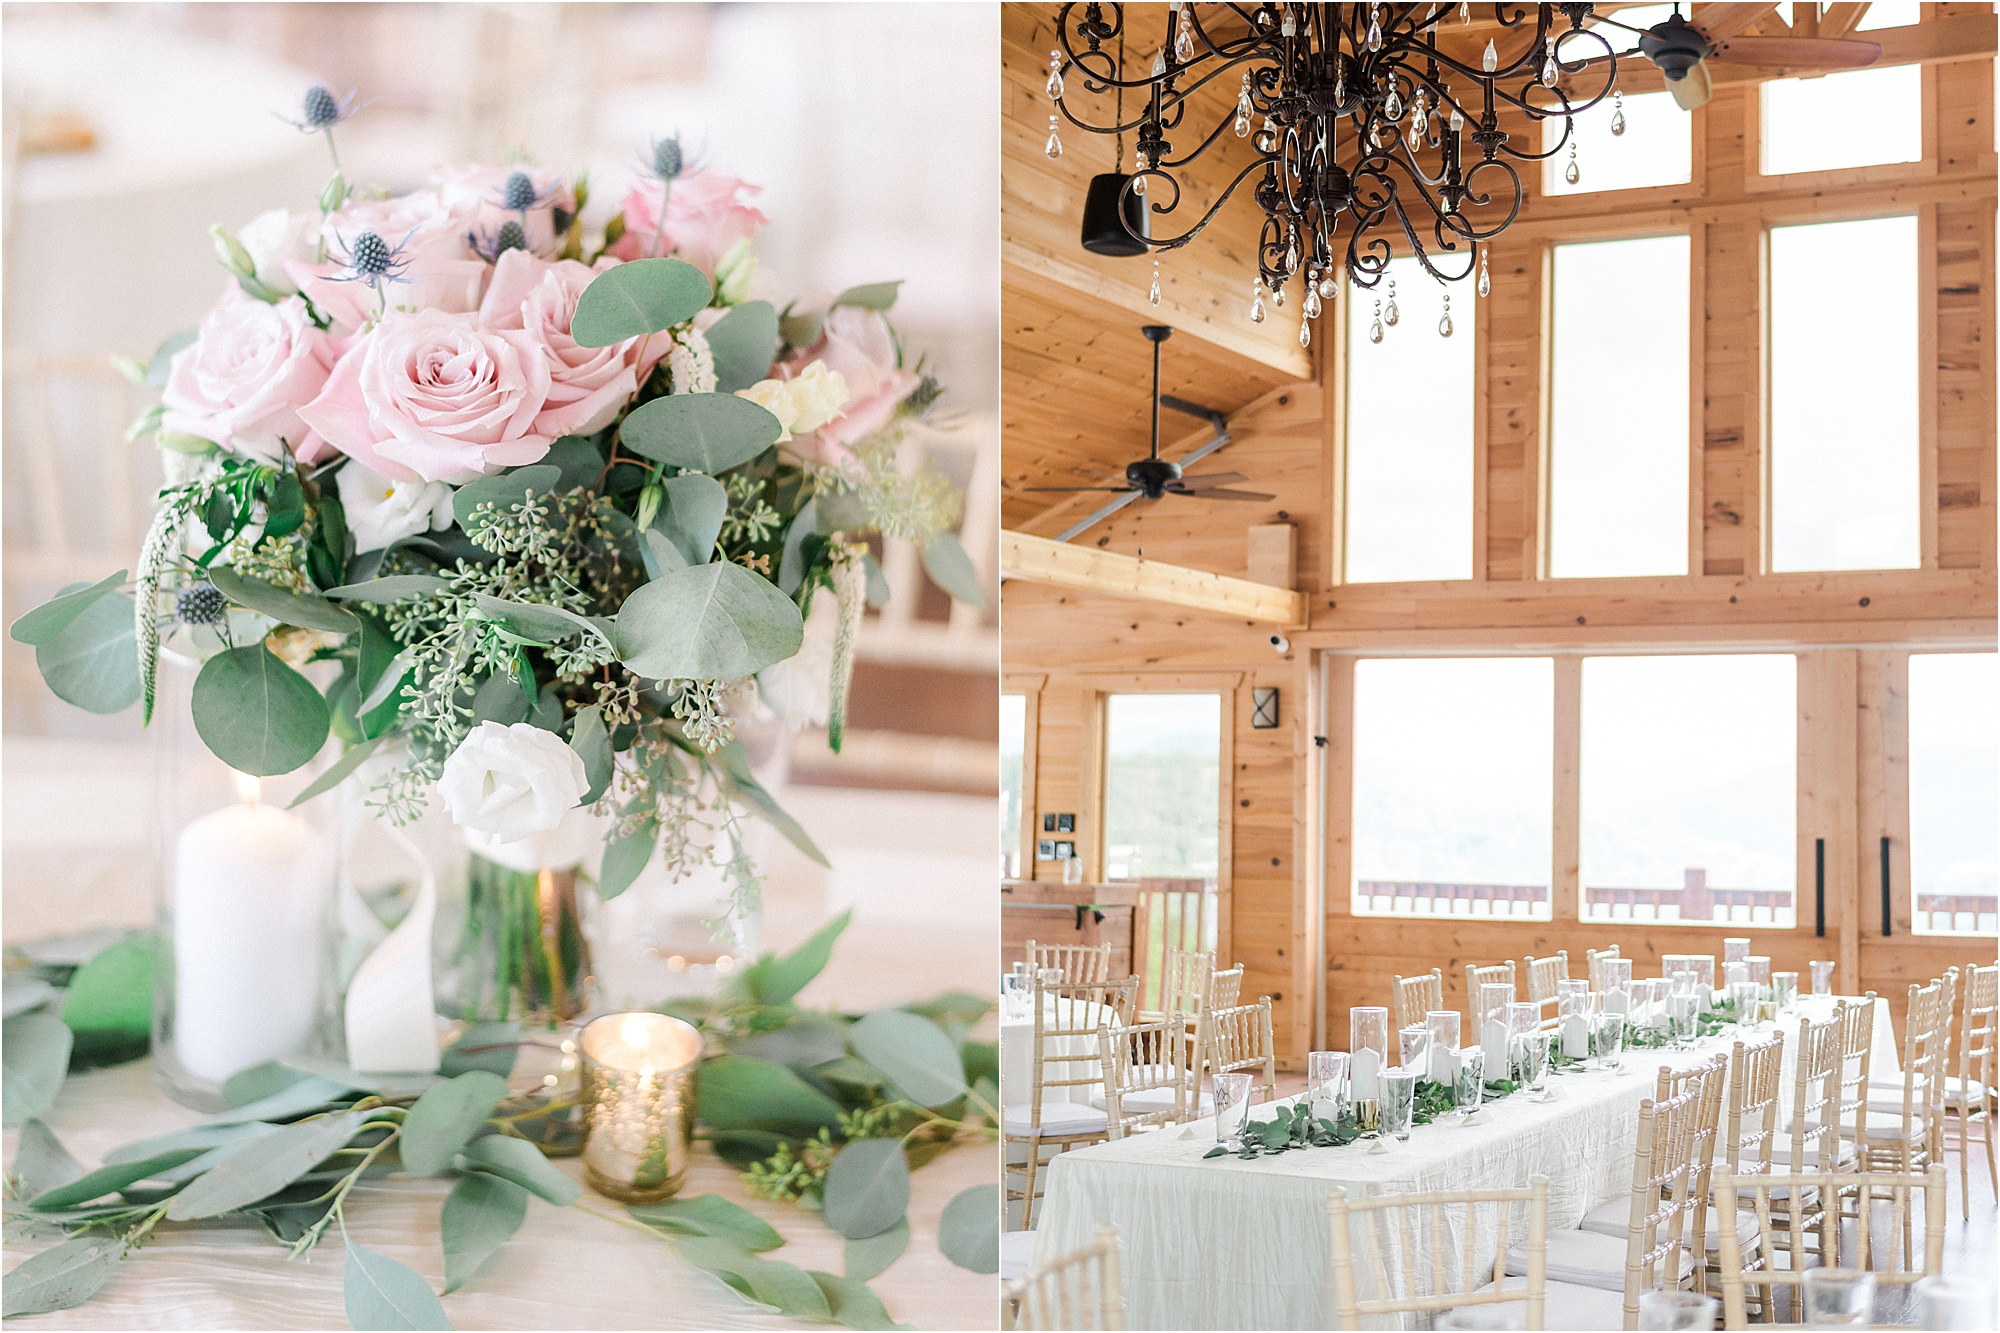 light pink reception decorations at mountain wedding venue